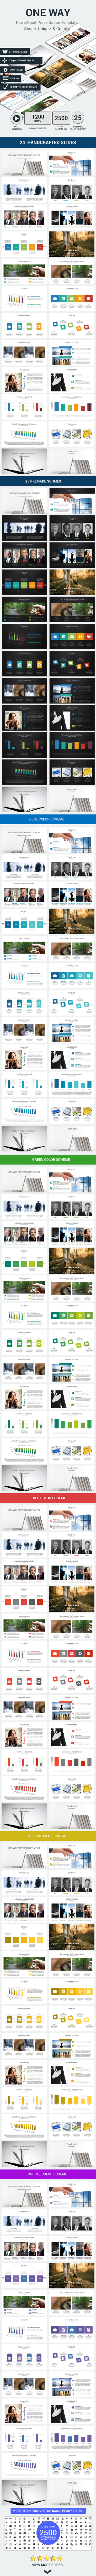 ONE WAY PowerPoint Presentation Template (PowerPoint Templates)